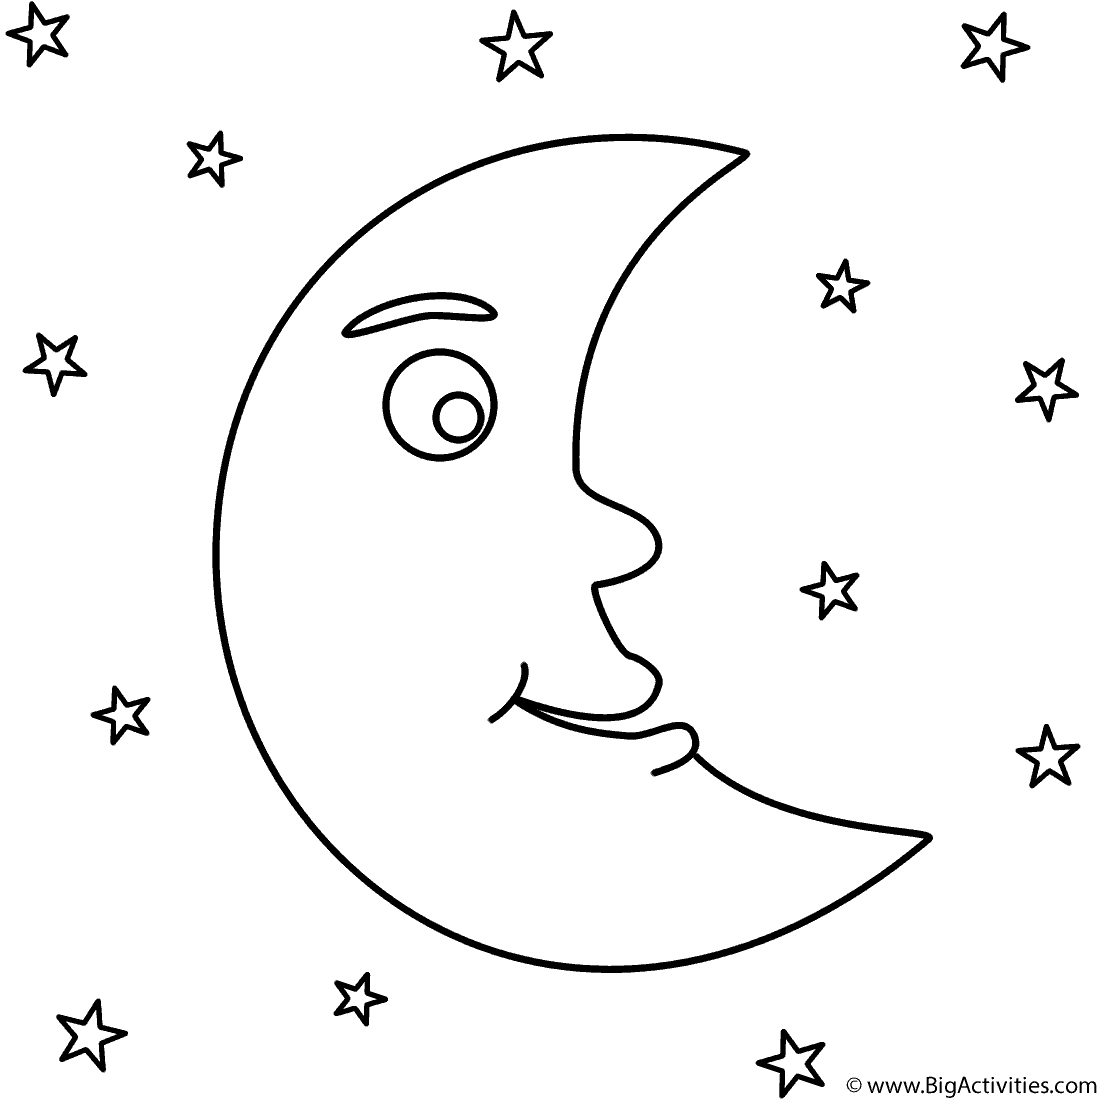 Crescent Moon with Stars Coloring Page Space